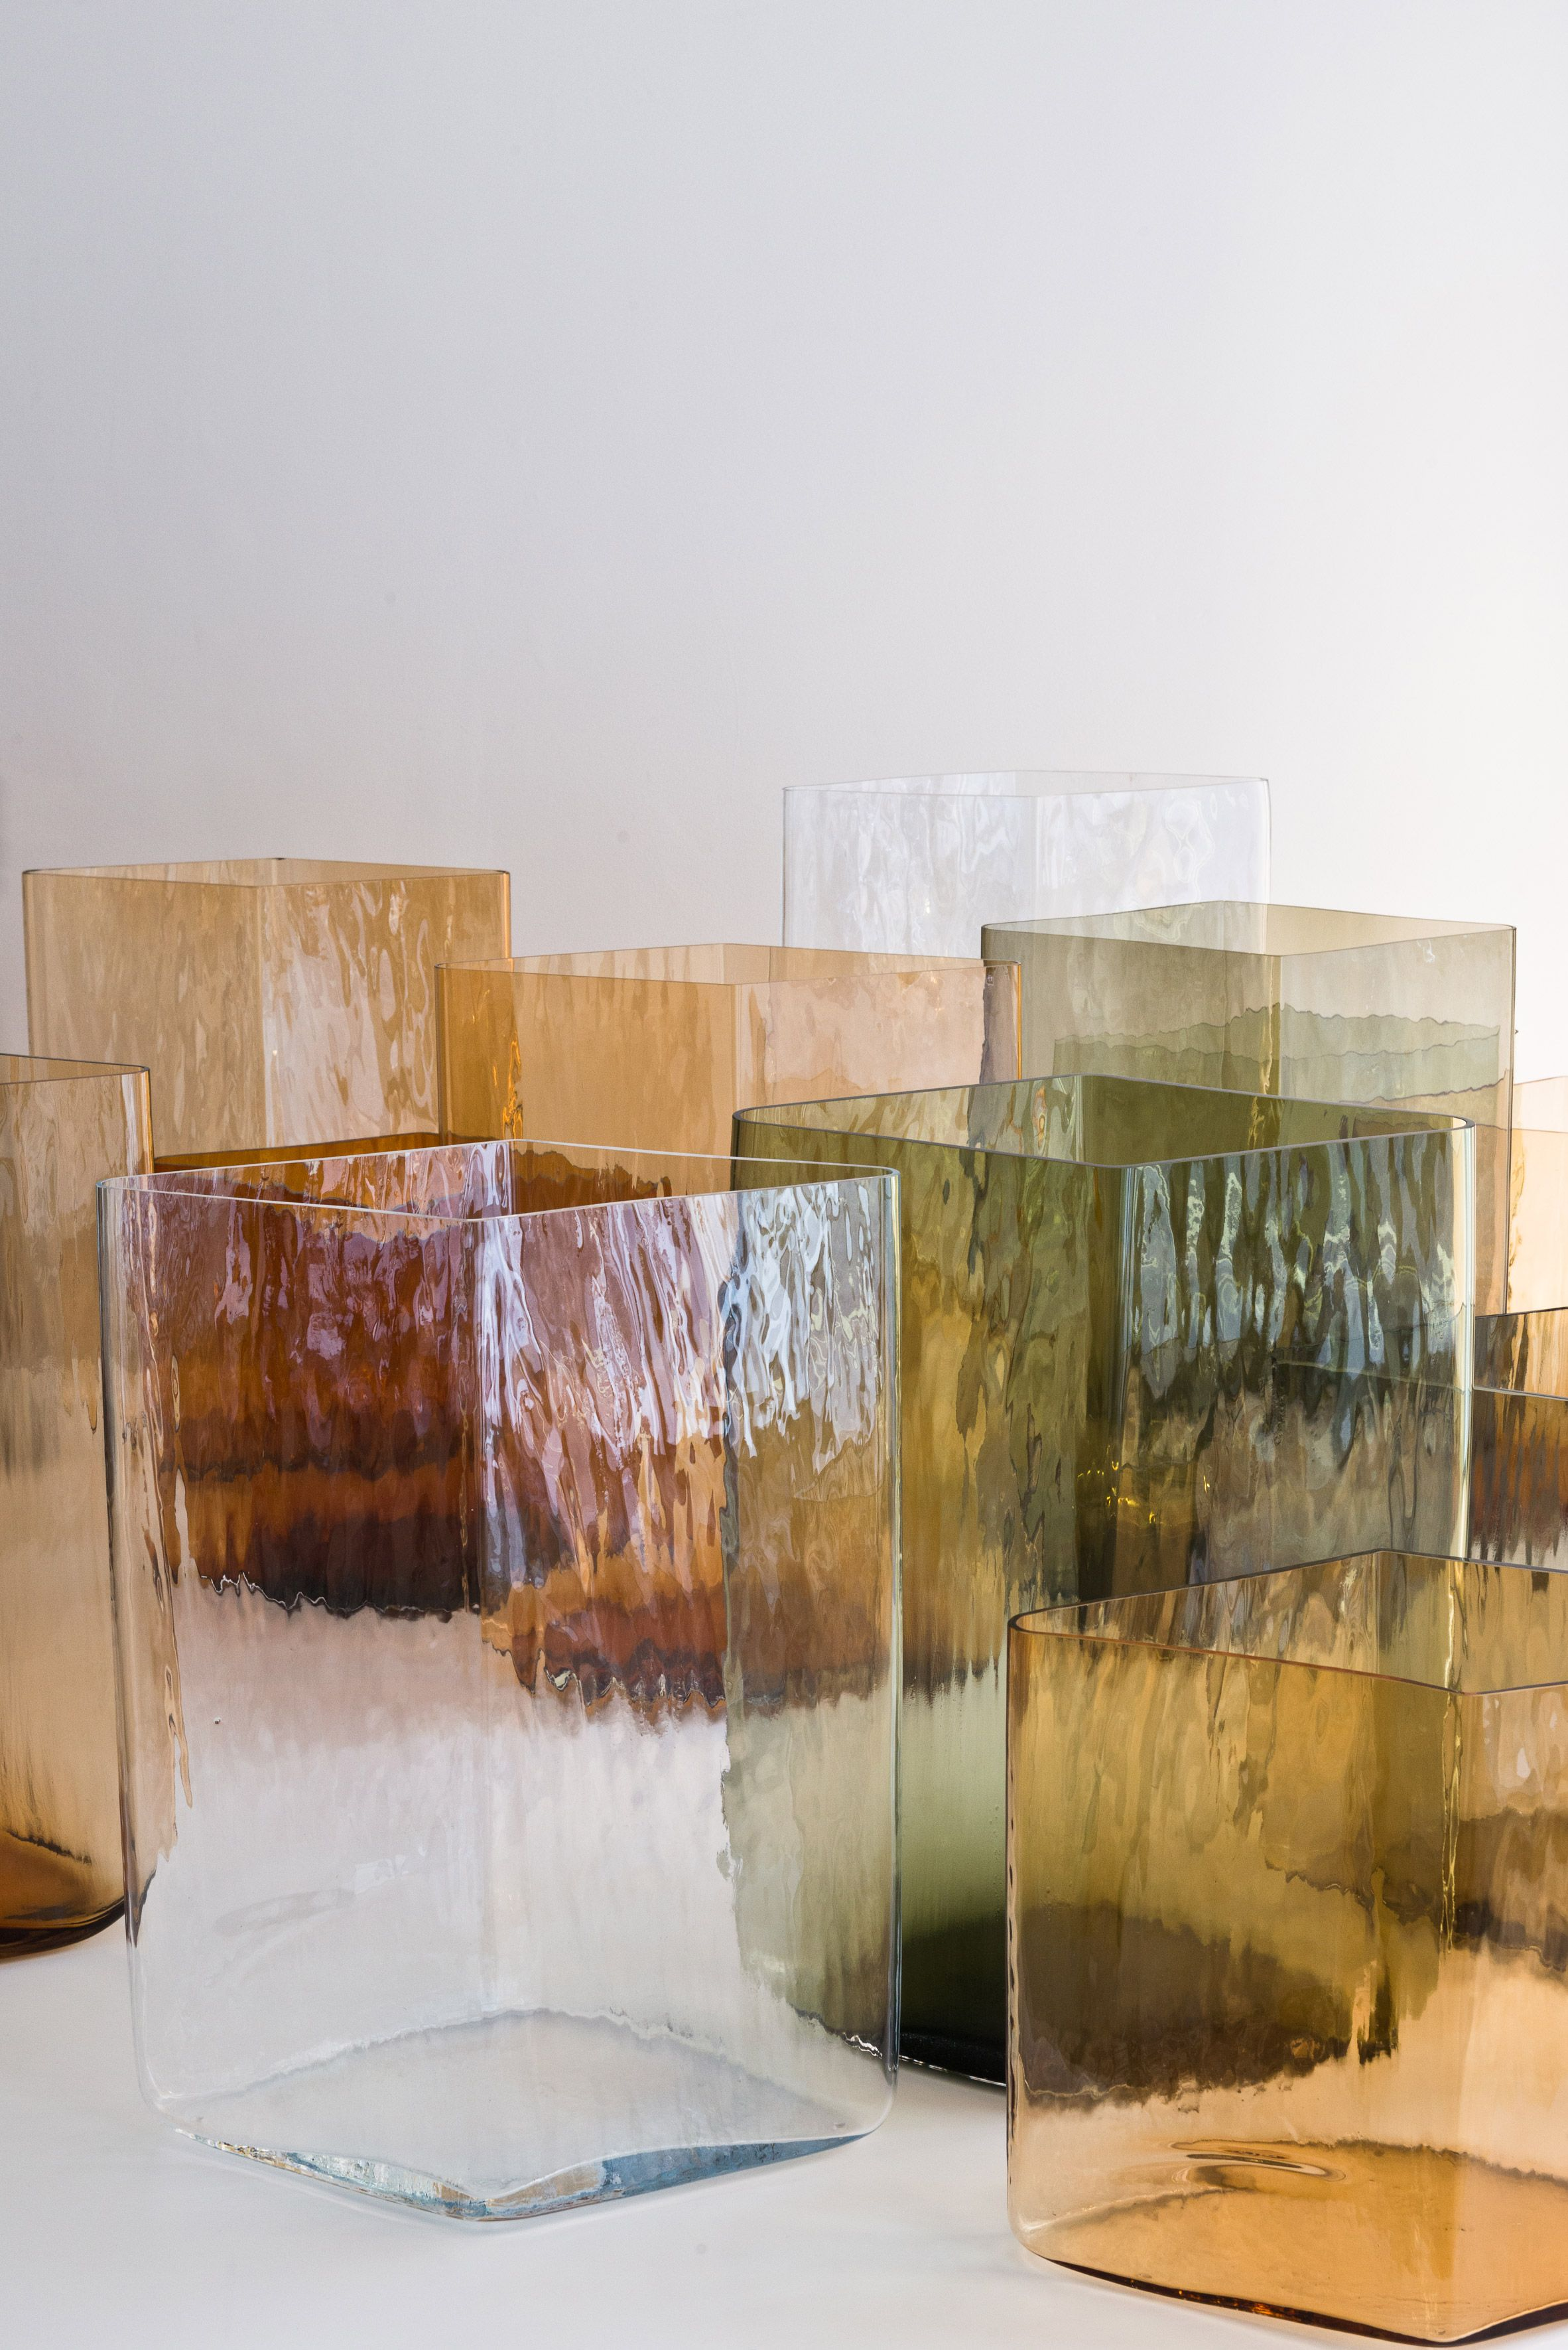 Ronan and Erwan Bouroullec used wooden moulds